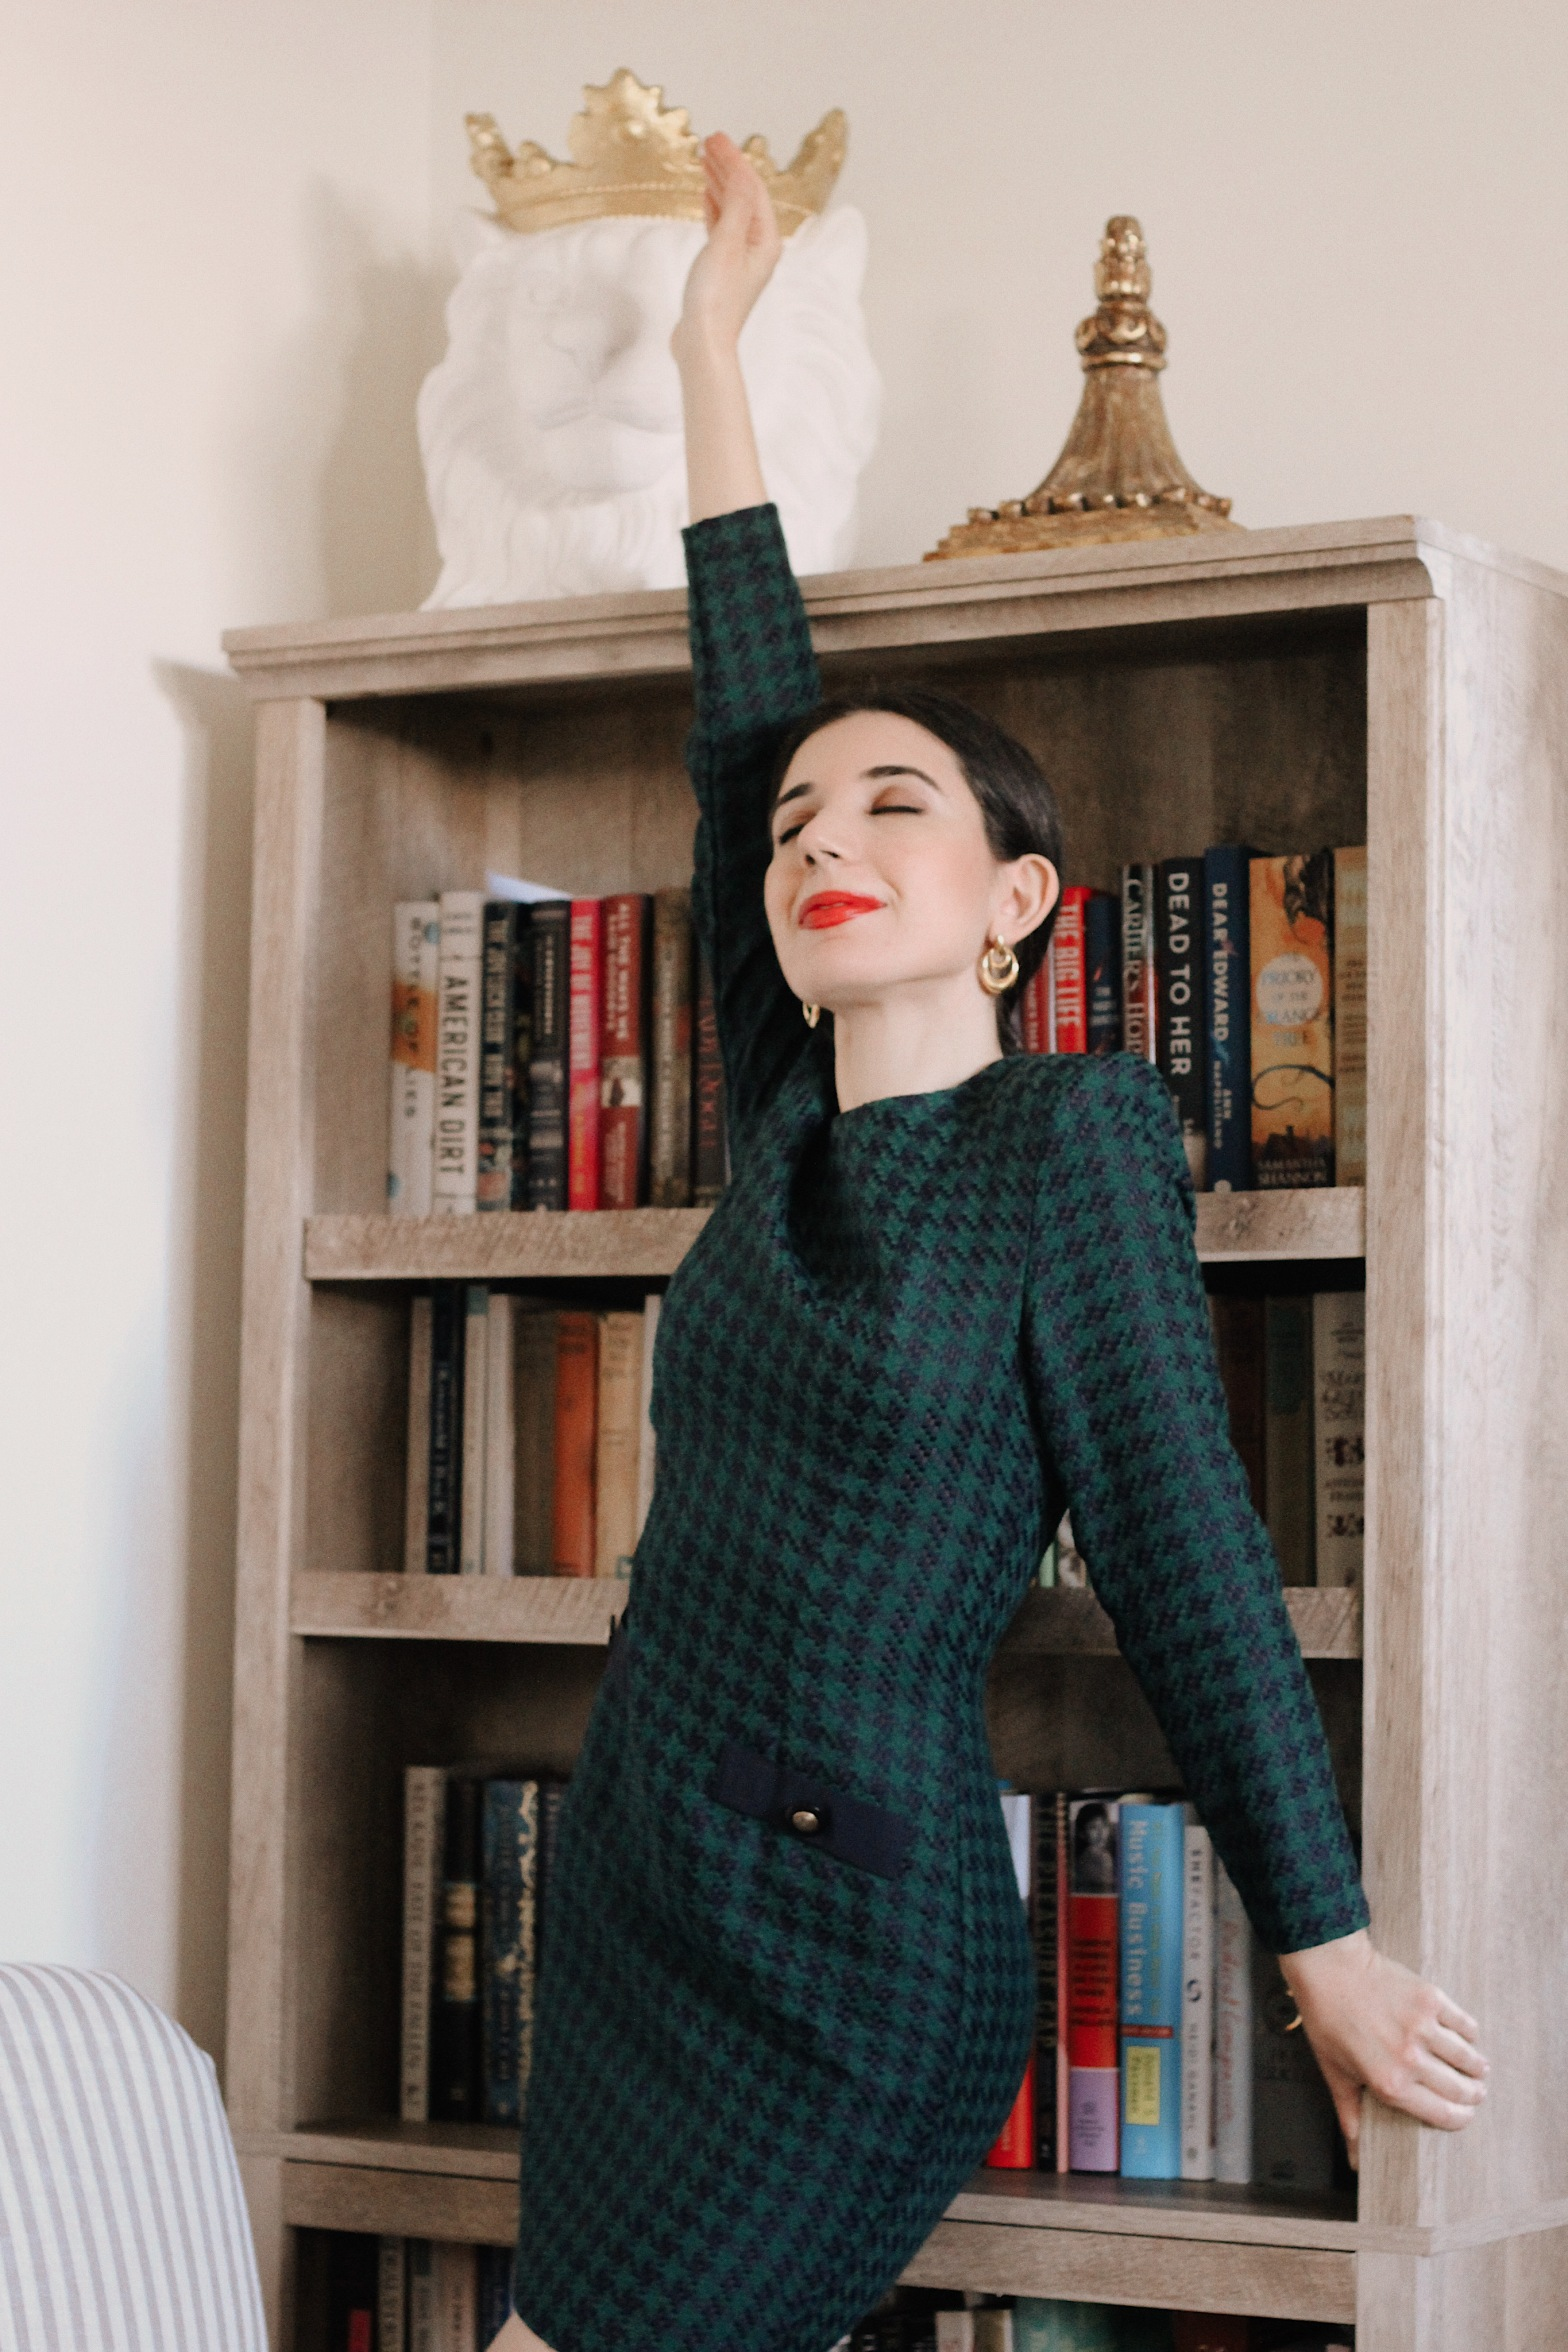 red heels, Christmas outfit, Christmas decorations houndstooth dress, gold hoop earrings, Christmas fashion, holiday fashion, holiday style, holiday outfit, red lips, green dress, shoulder pads